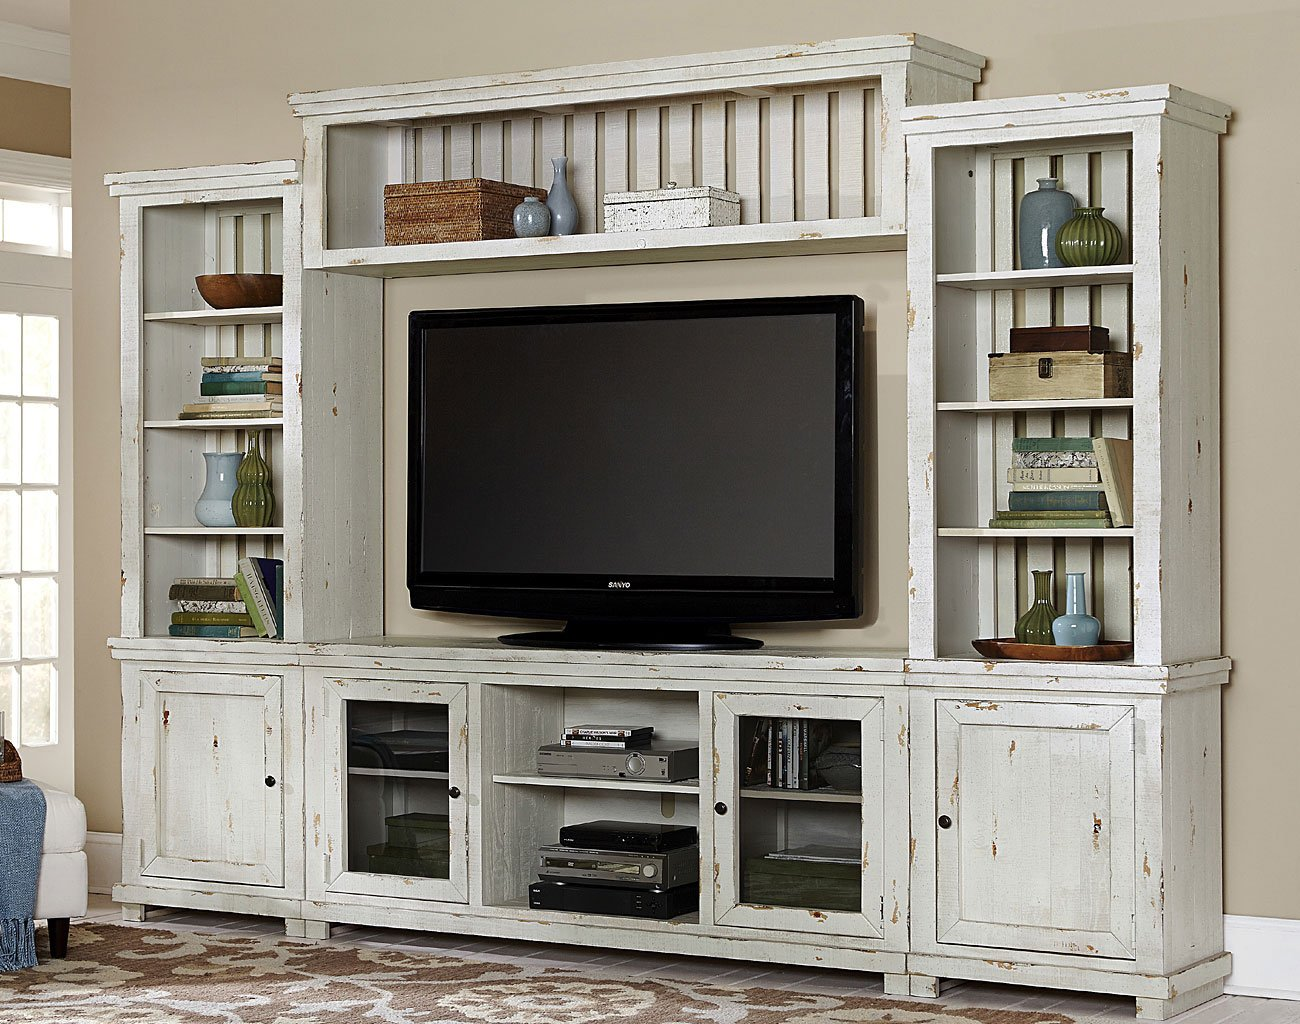 Willow Entertainment Wall Distressed White